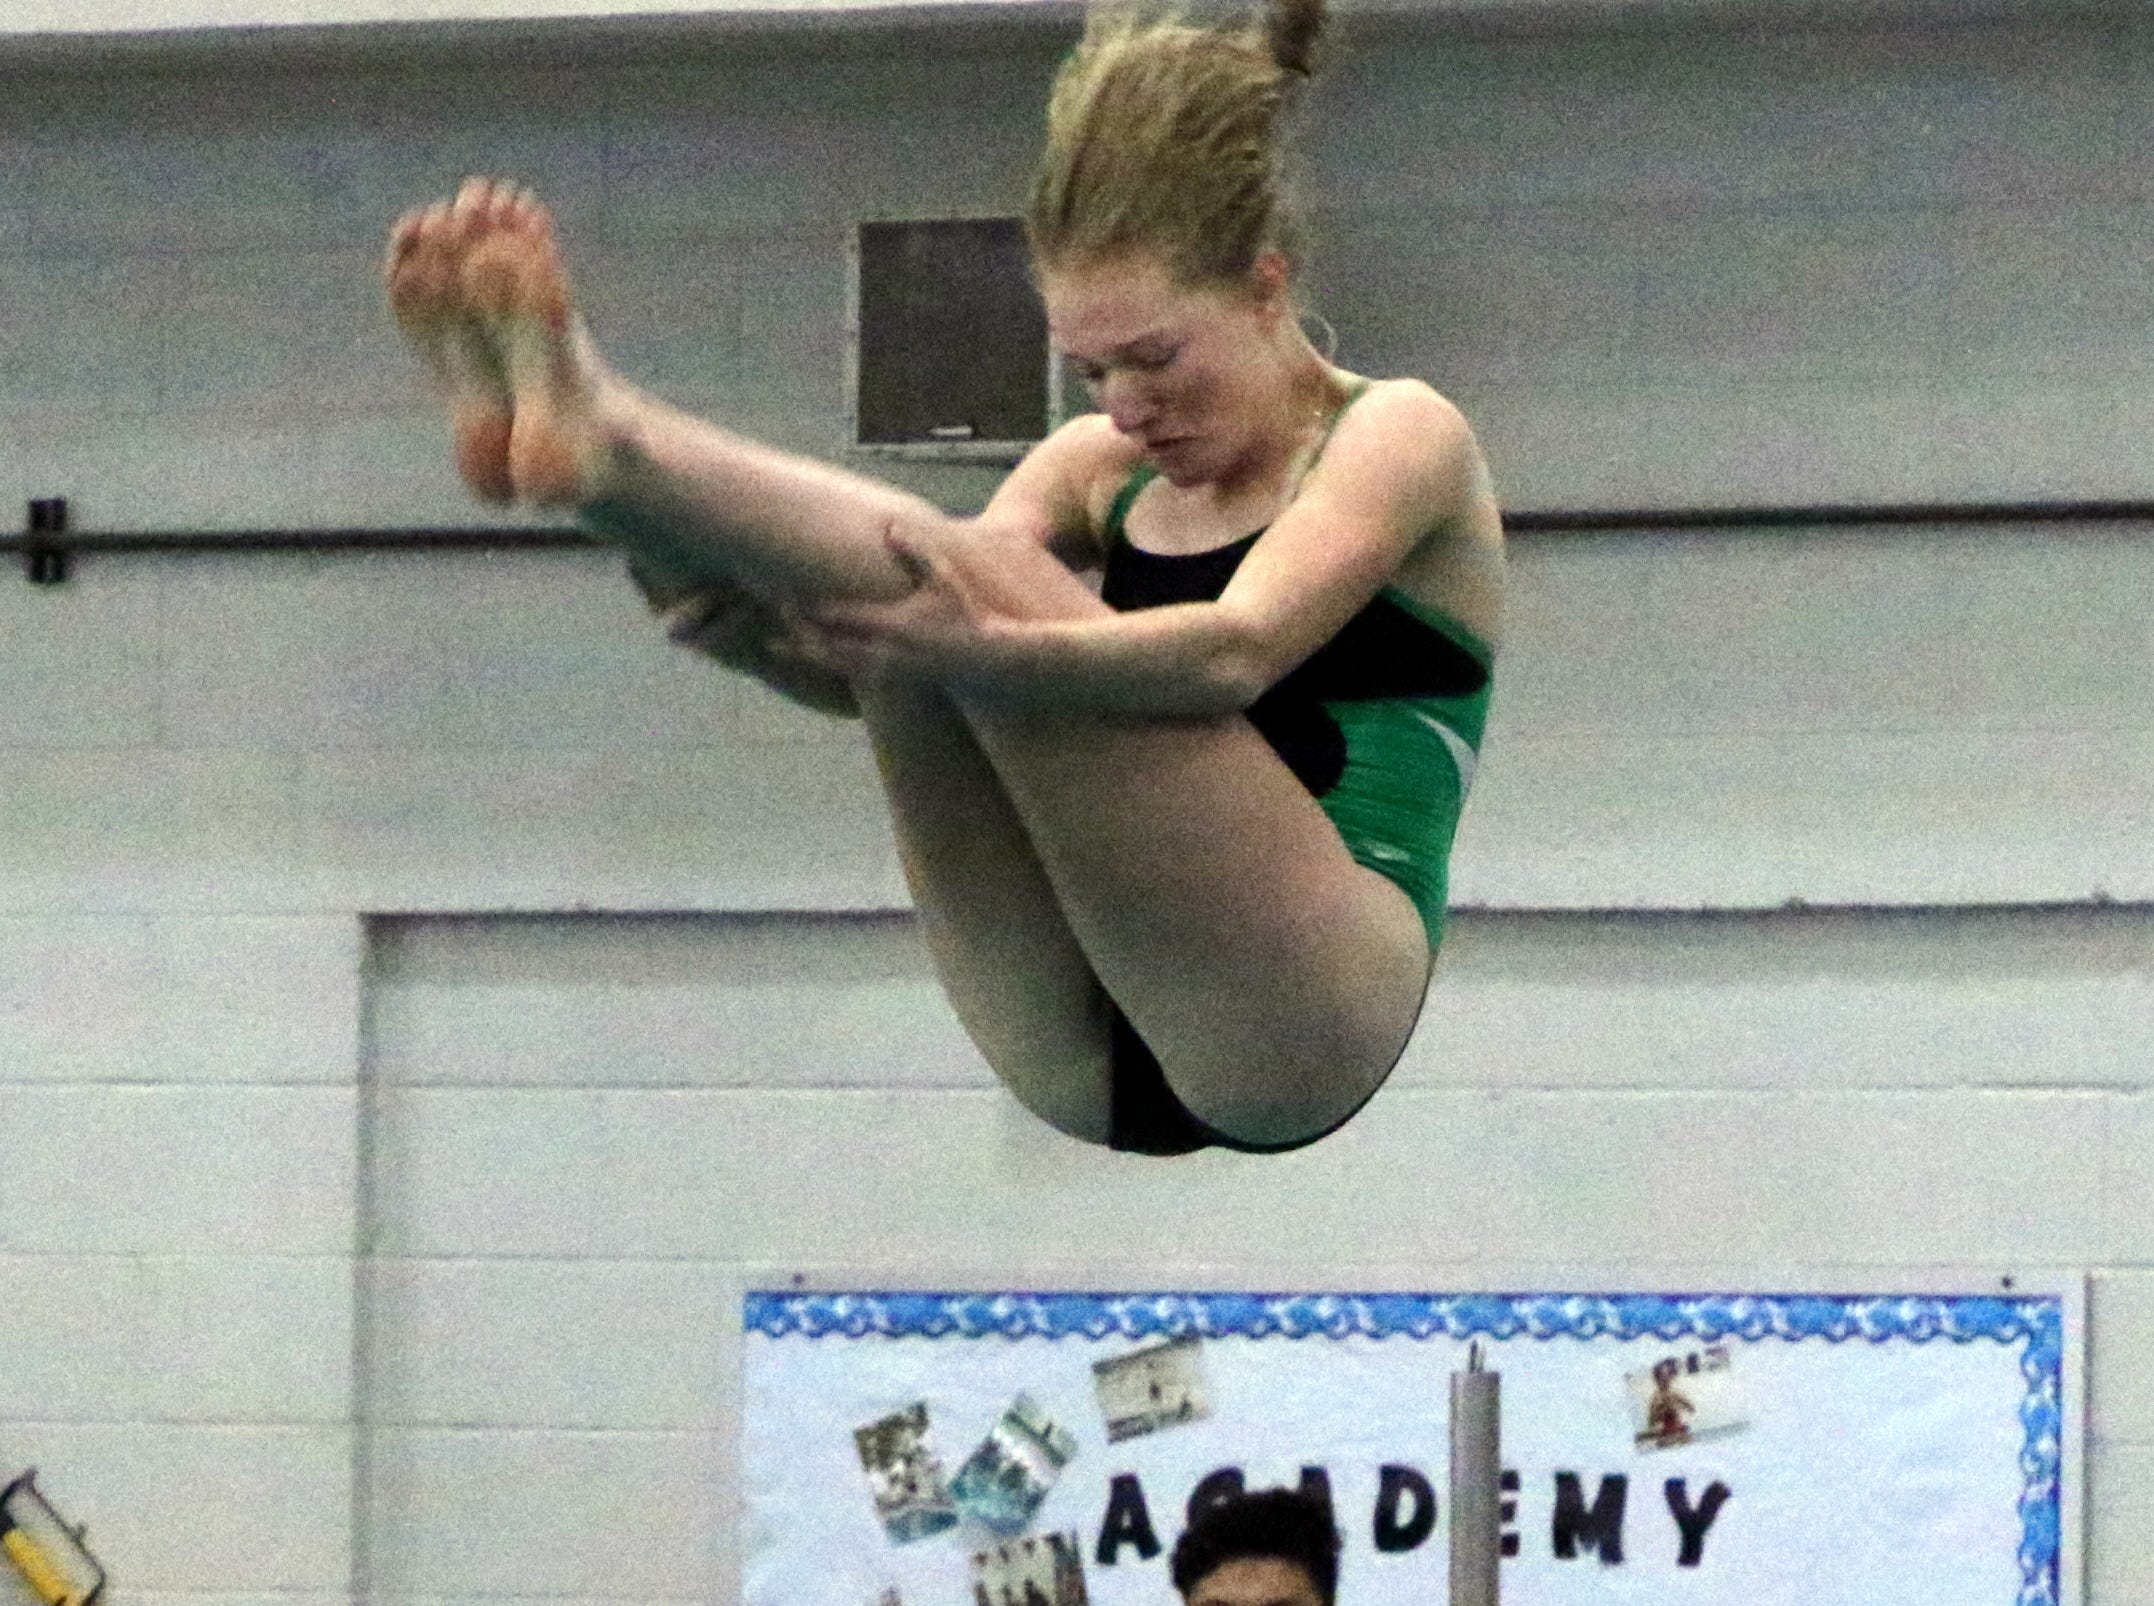 Farmington's Eliza Merrion tucks her legs during one of her dives on Friday. She finished Friday in 11th place.